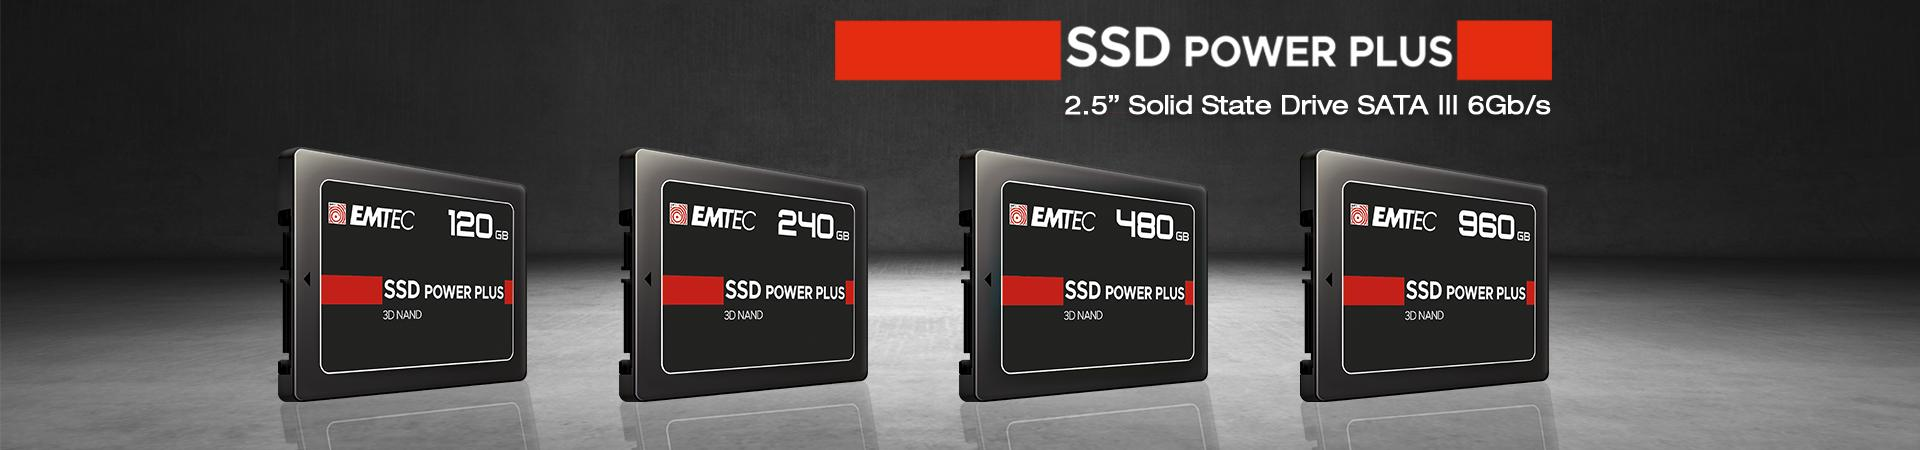 X150 SSD Power Plus